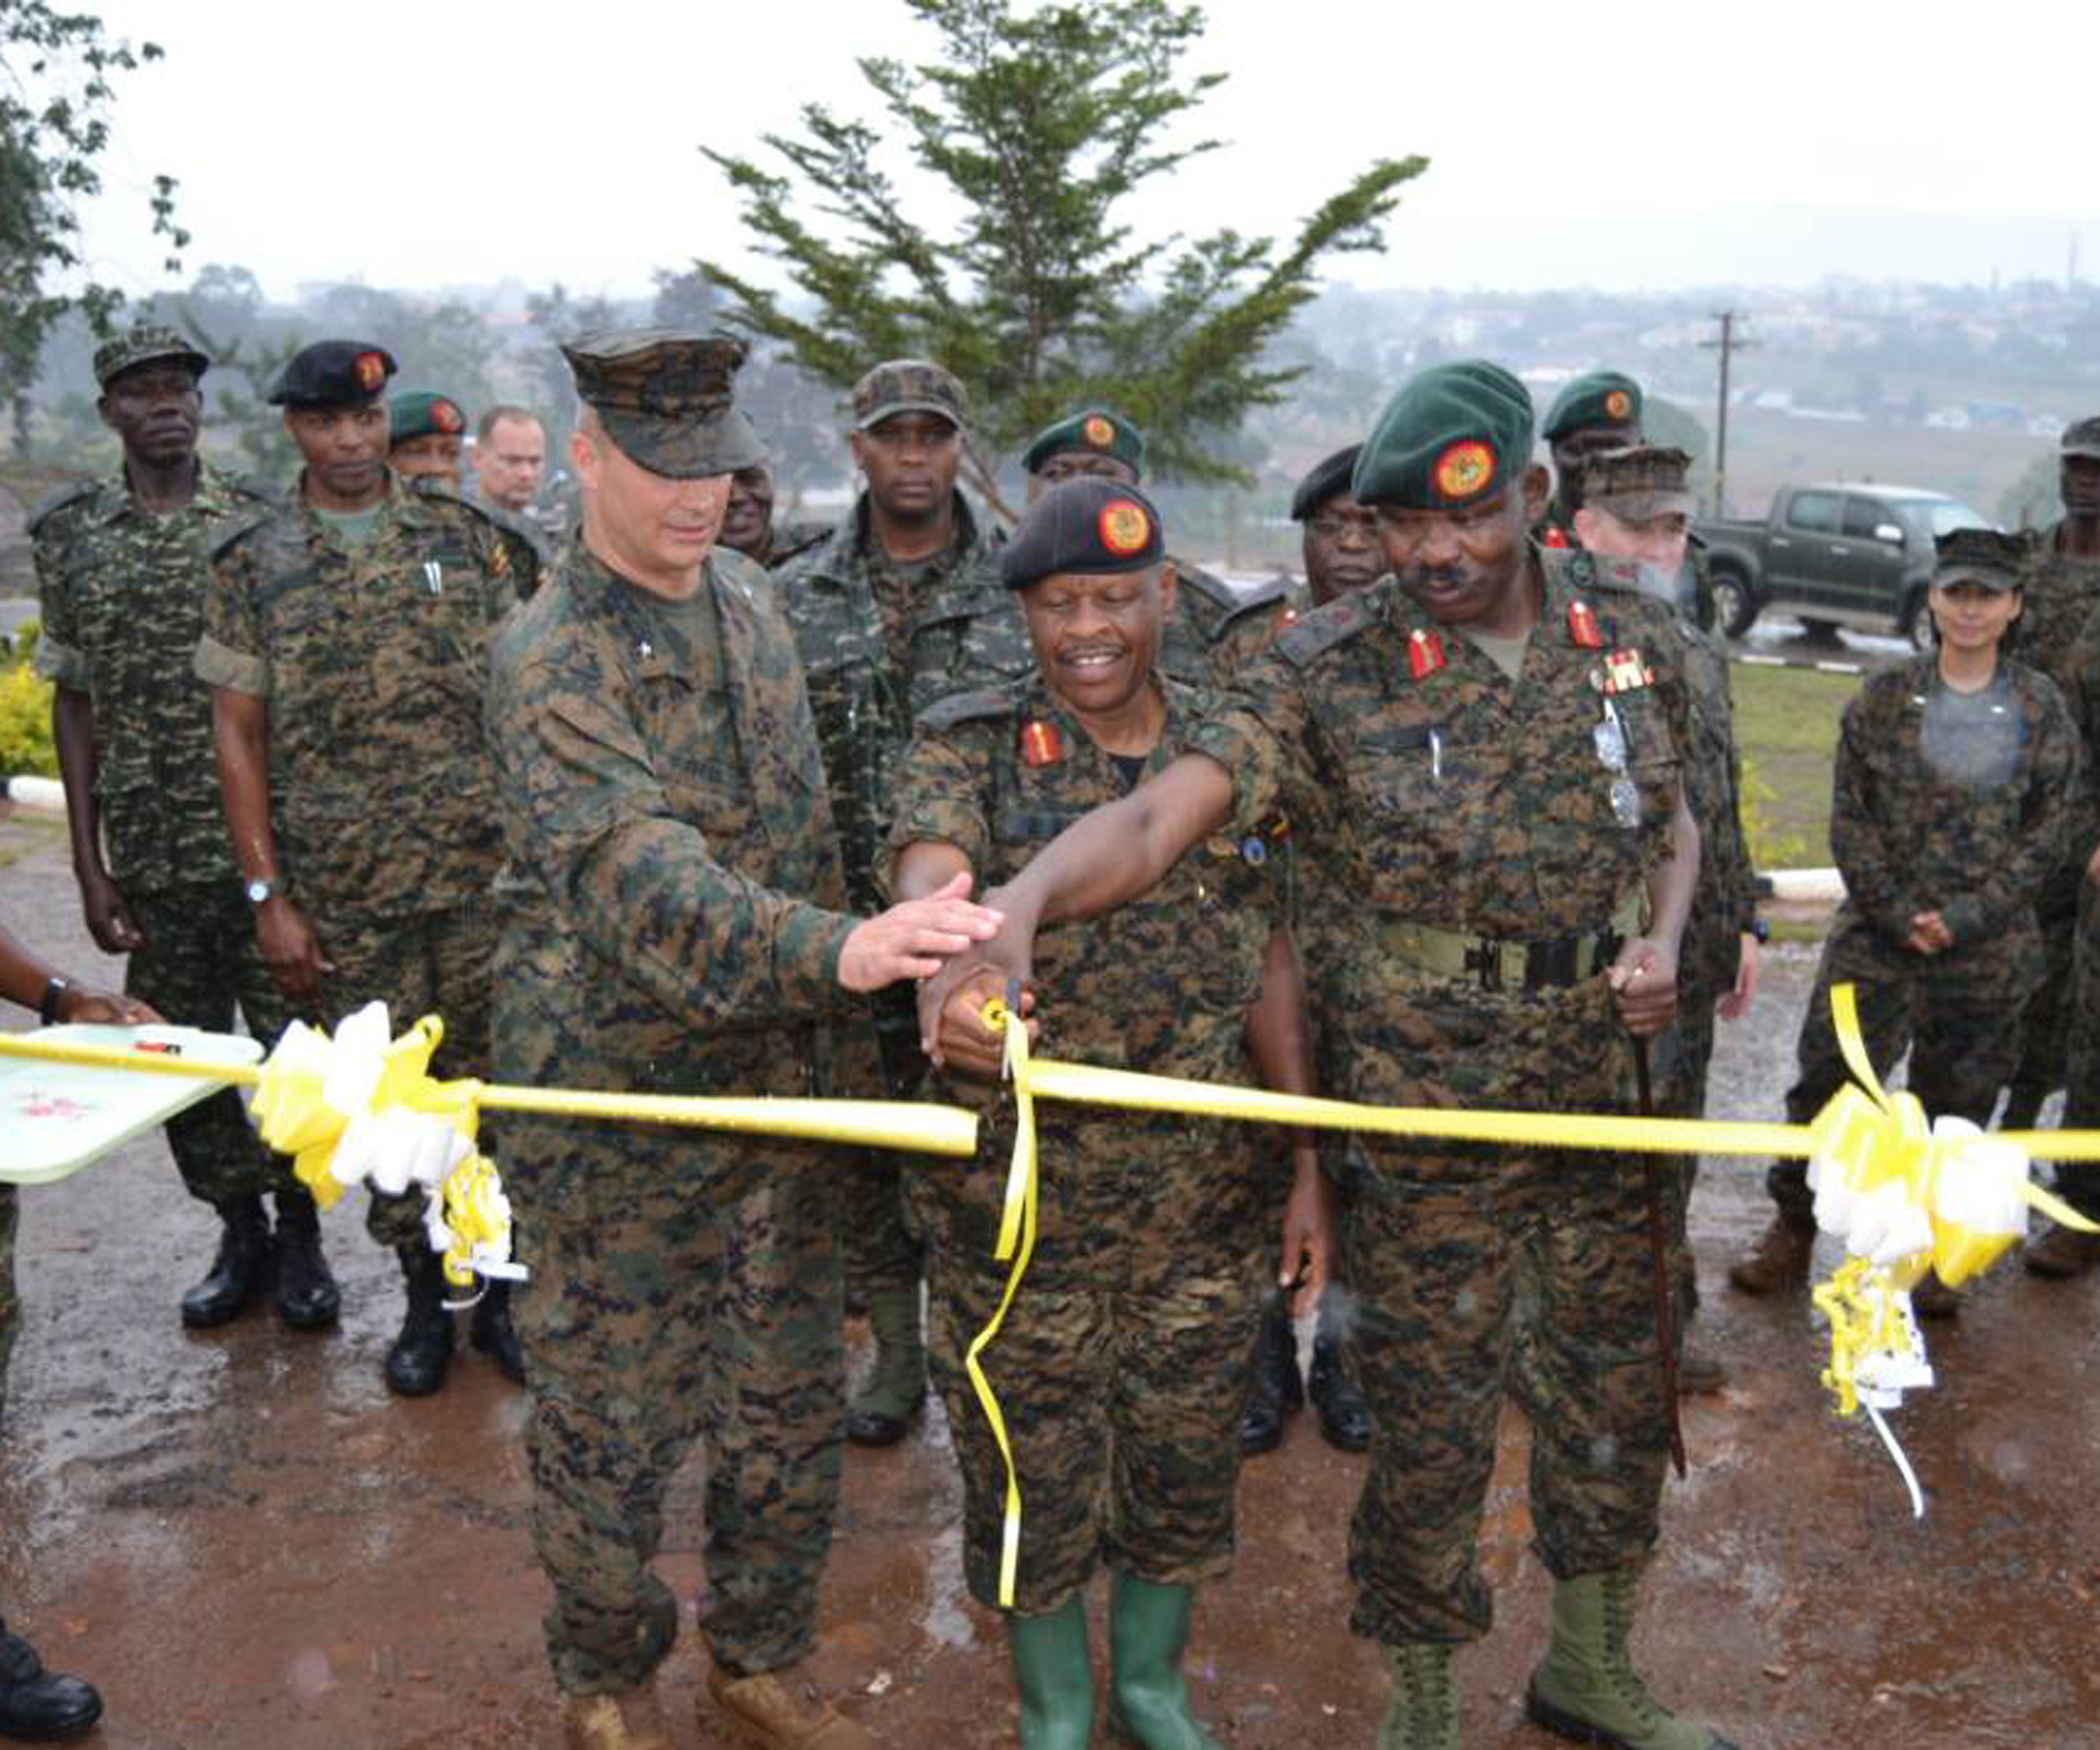 Combined Joint Task Force-Horn of Africa commander U.S. Marine Brig. Gen. David Furness (left) stands side-by-side with Uganda People's Defense Force leadership July 7, 2017, to cut a ribbon marking the grand opening of a training complex at the Uganda Rapid Deployment Capability Center, based in Jinja, Uganda. This took place preceding an historic graduation of 60 UPDF engineers from Class 17.2, which was the first class where UPDF instructors both ran and taught the entire course. Class 17.2's training took place at the Uganda Rapid Deployment Capability Center. (Courtesy photo by Uganda Army Lt. Col. Nelson Aheebwa)